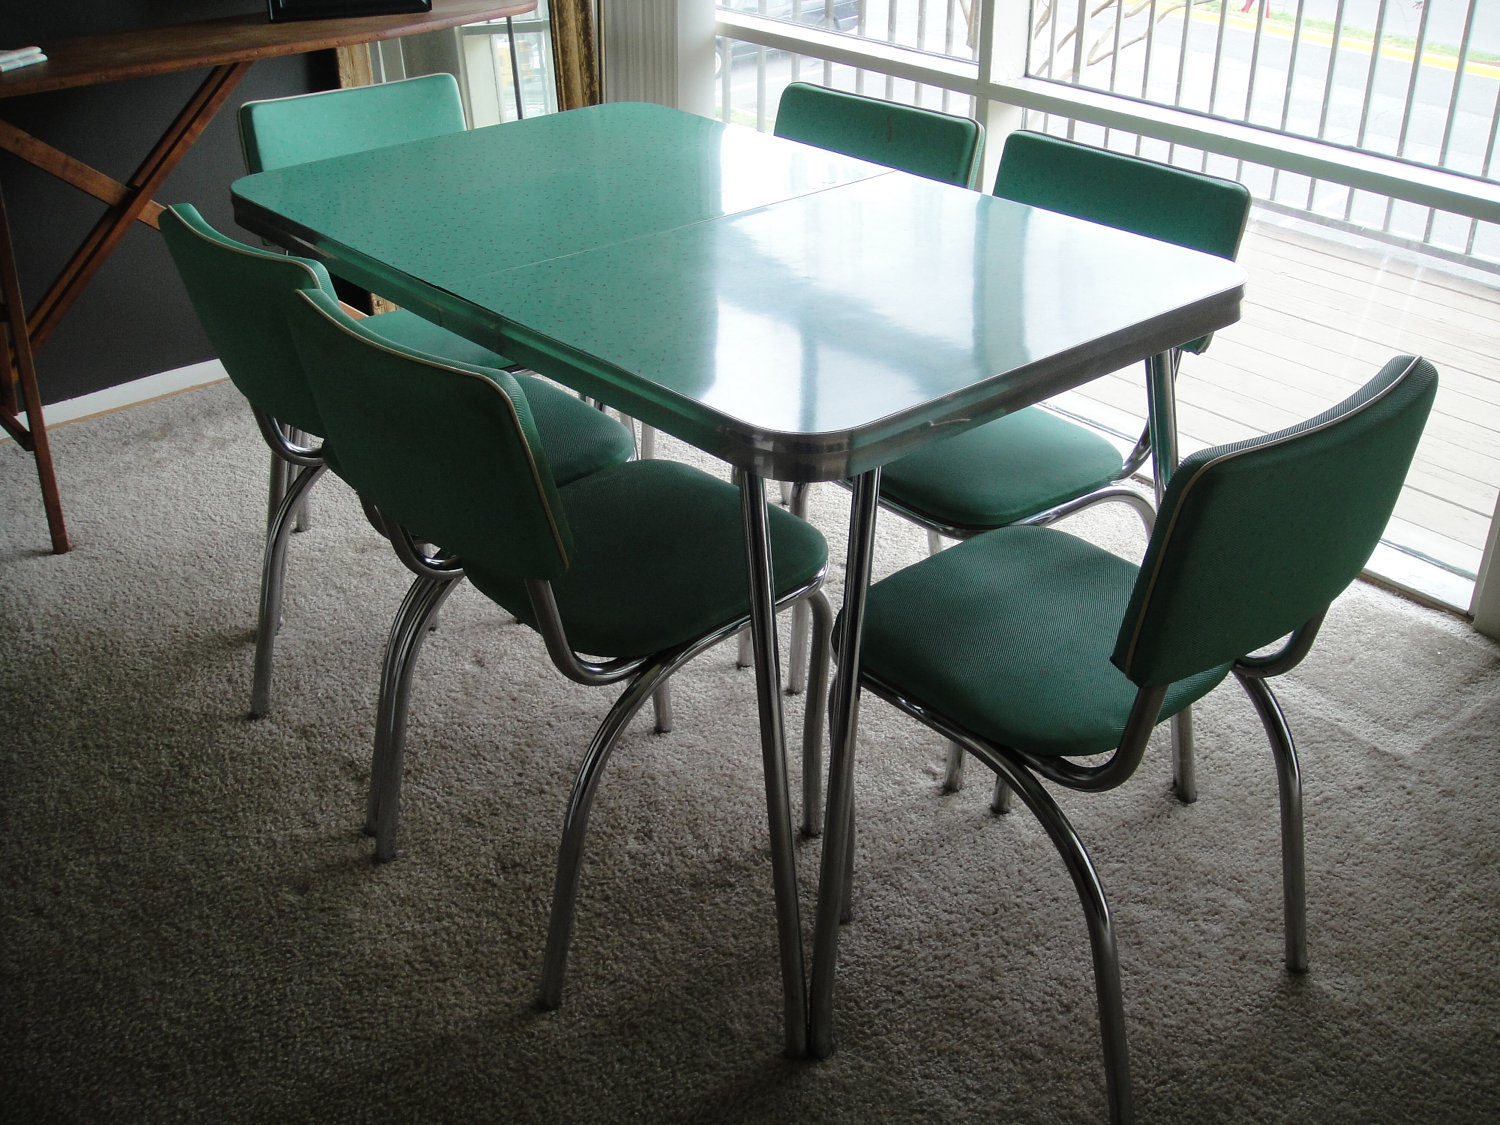 1950s Retro Kitchen Table Chairs